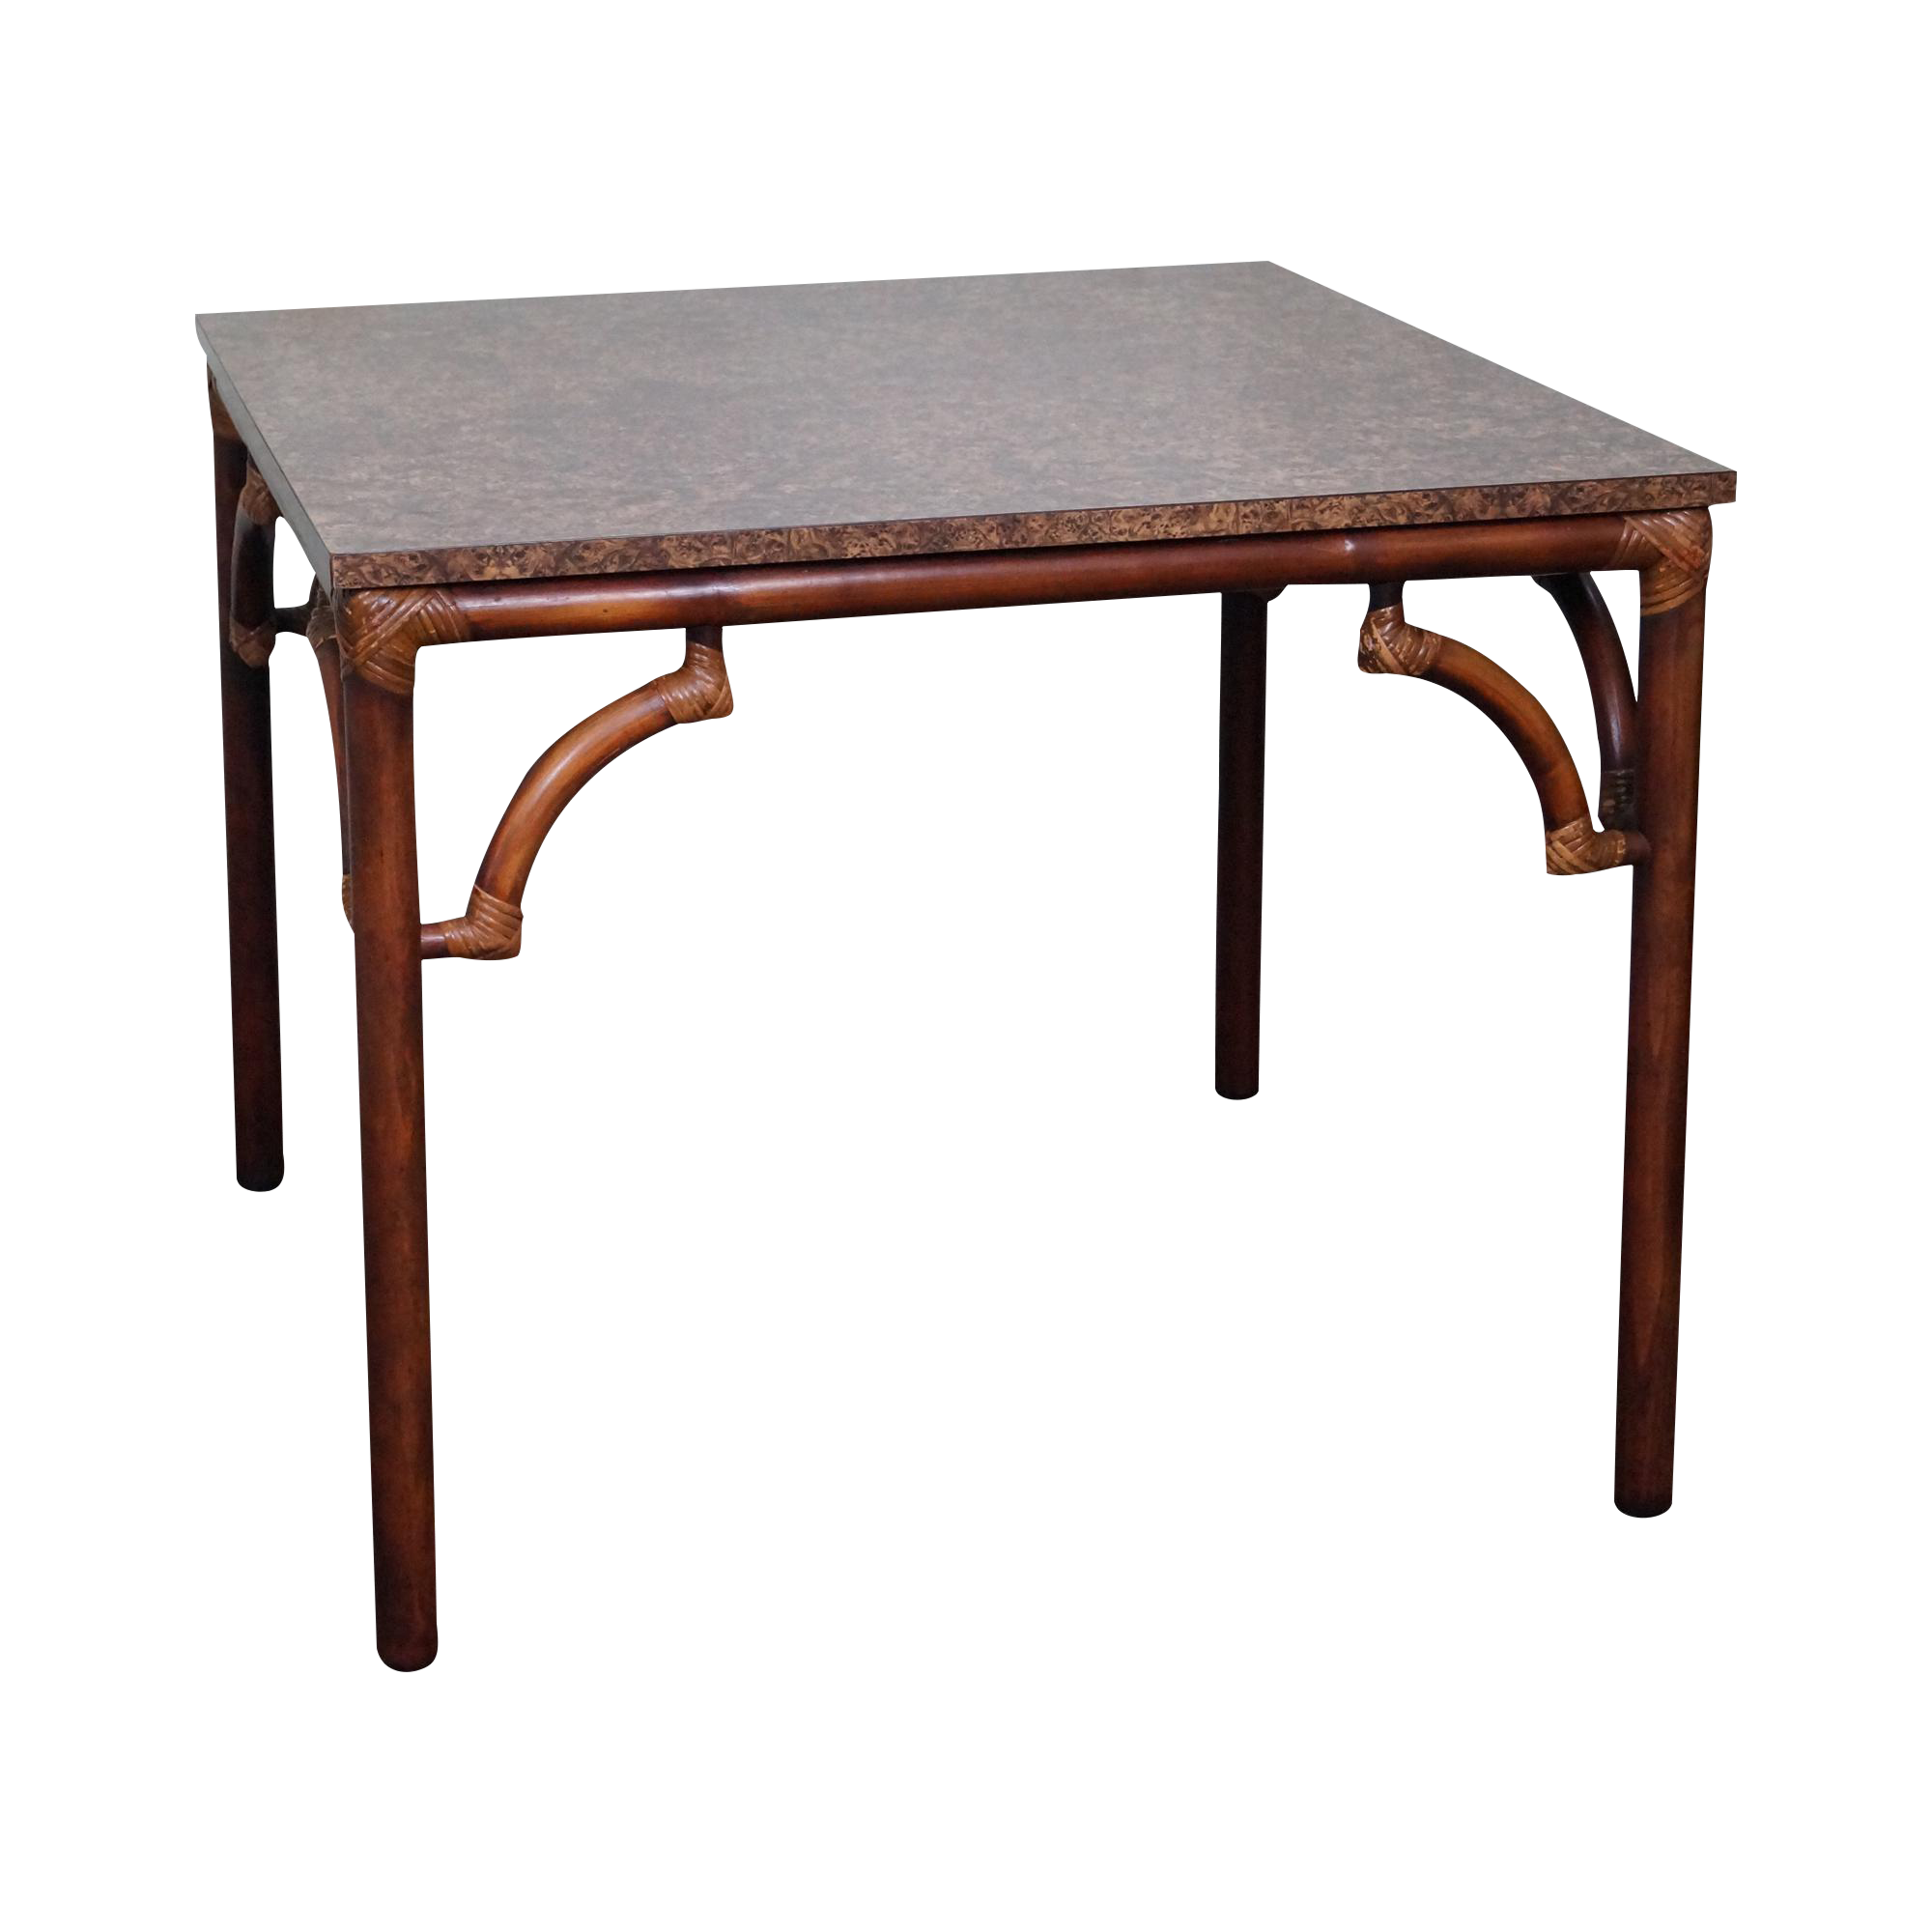 Wicker Kitchen Table: Vintage Square Rattan Bamboo Kitchen Table